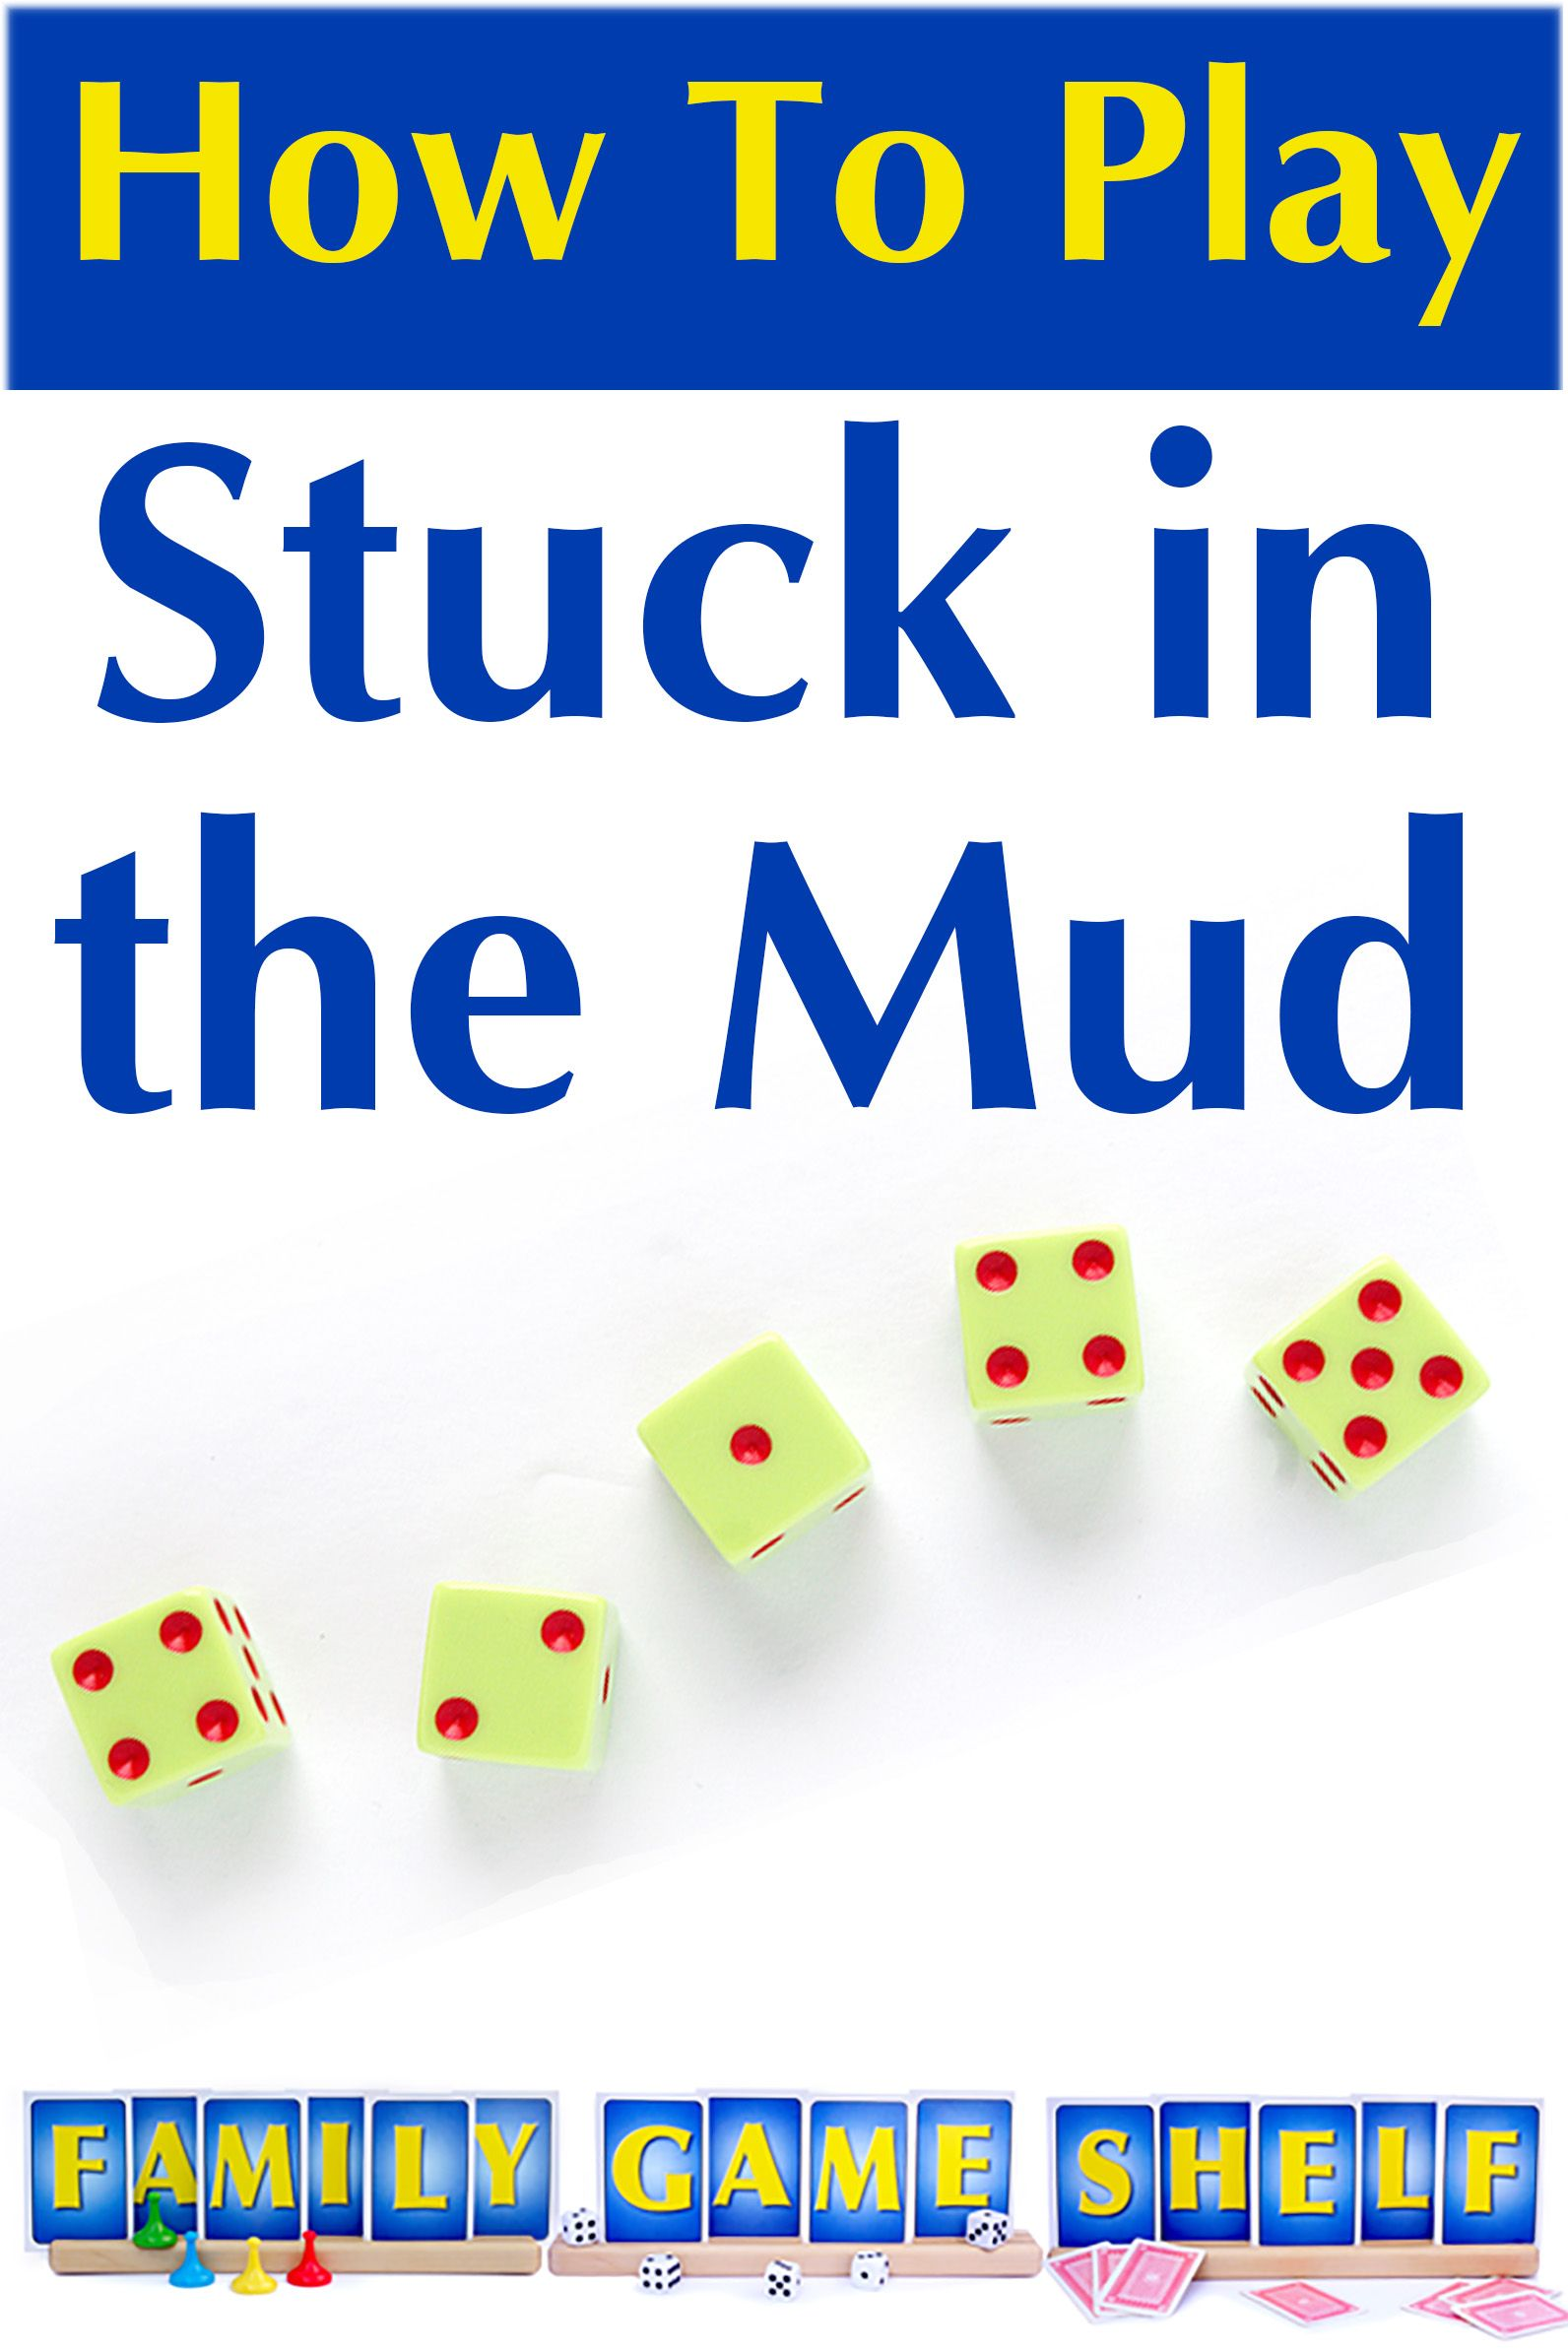 How to Play Stuck in the Mud Family Dice Game